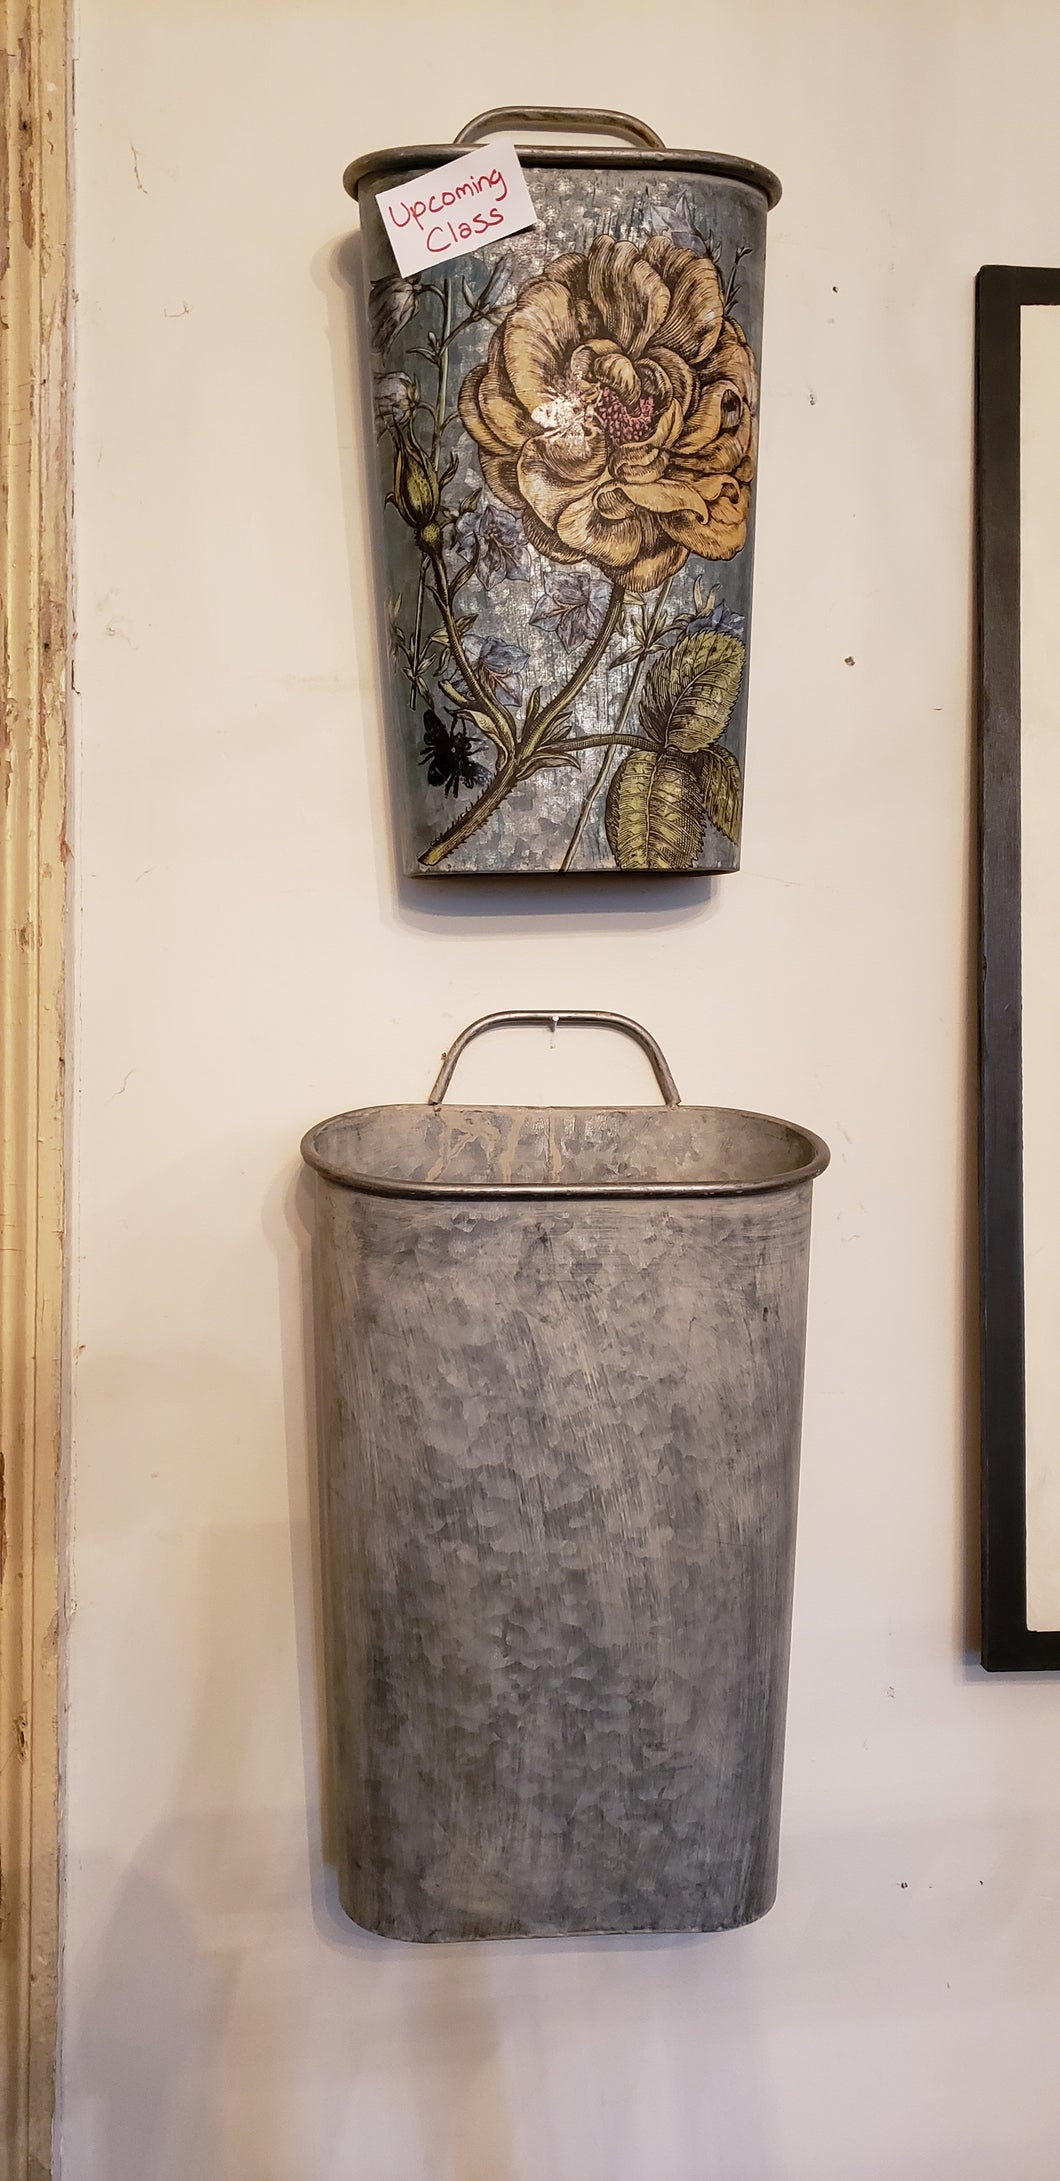 Galvanized Wall or Door Decor Bucket Thursday, October 3rd, 630-830 pm